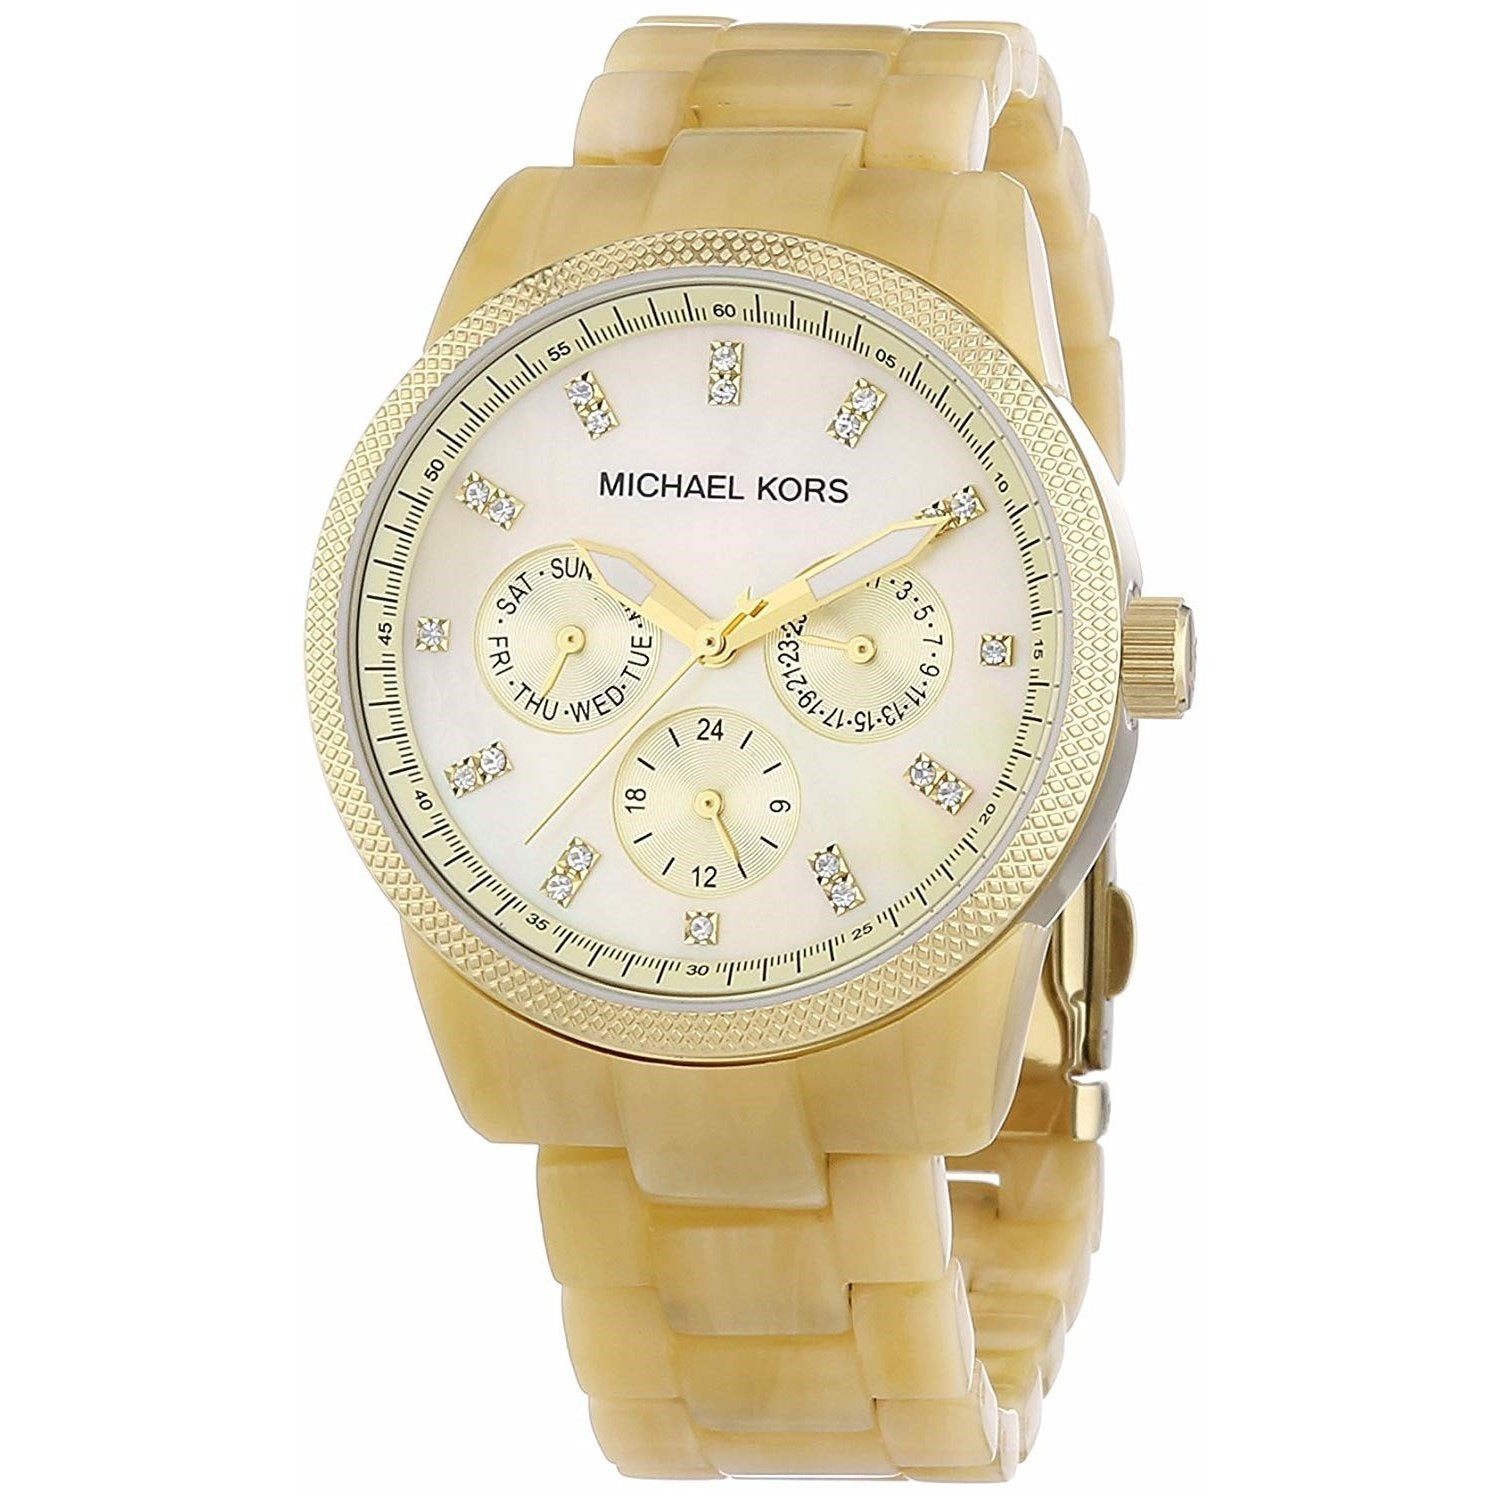 a42553f201be Michael Kors Women's MK5039 'Jet Set Horn' Multi-Function Crystal Yellow  Plastic Watch